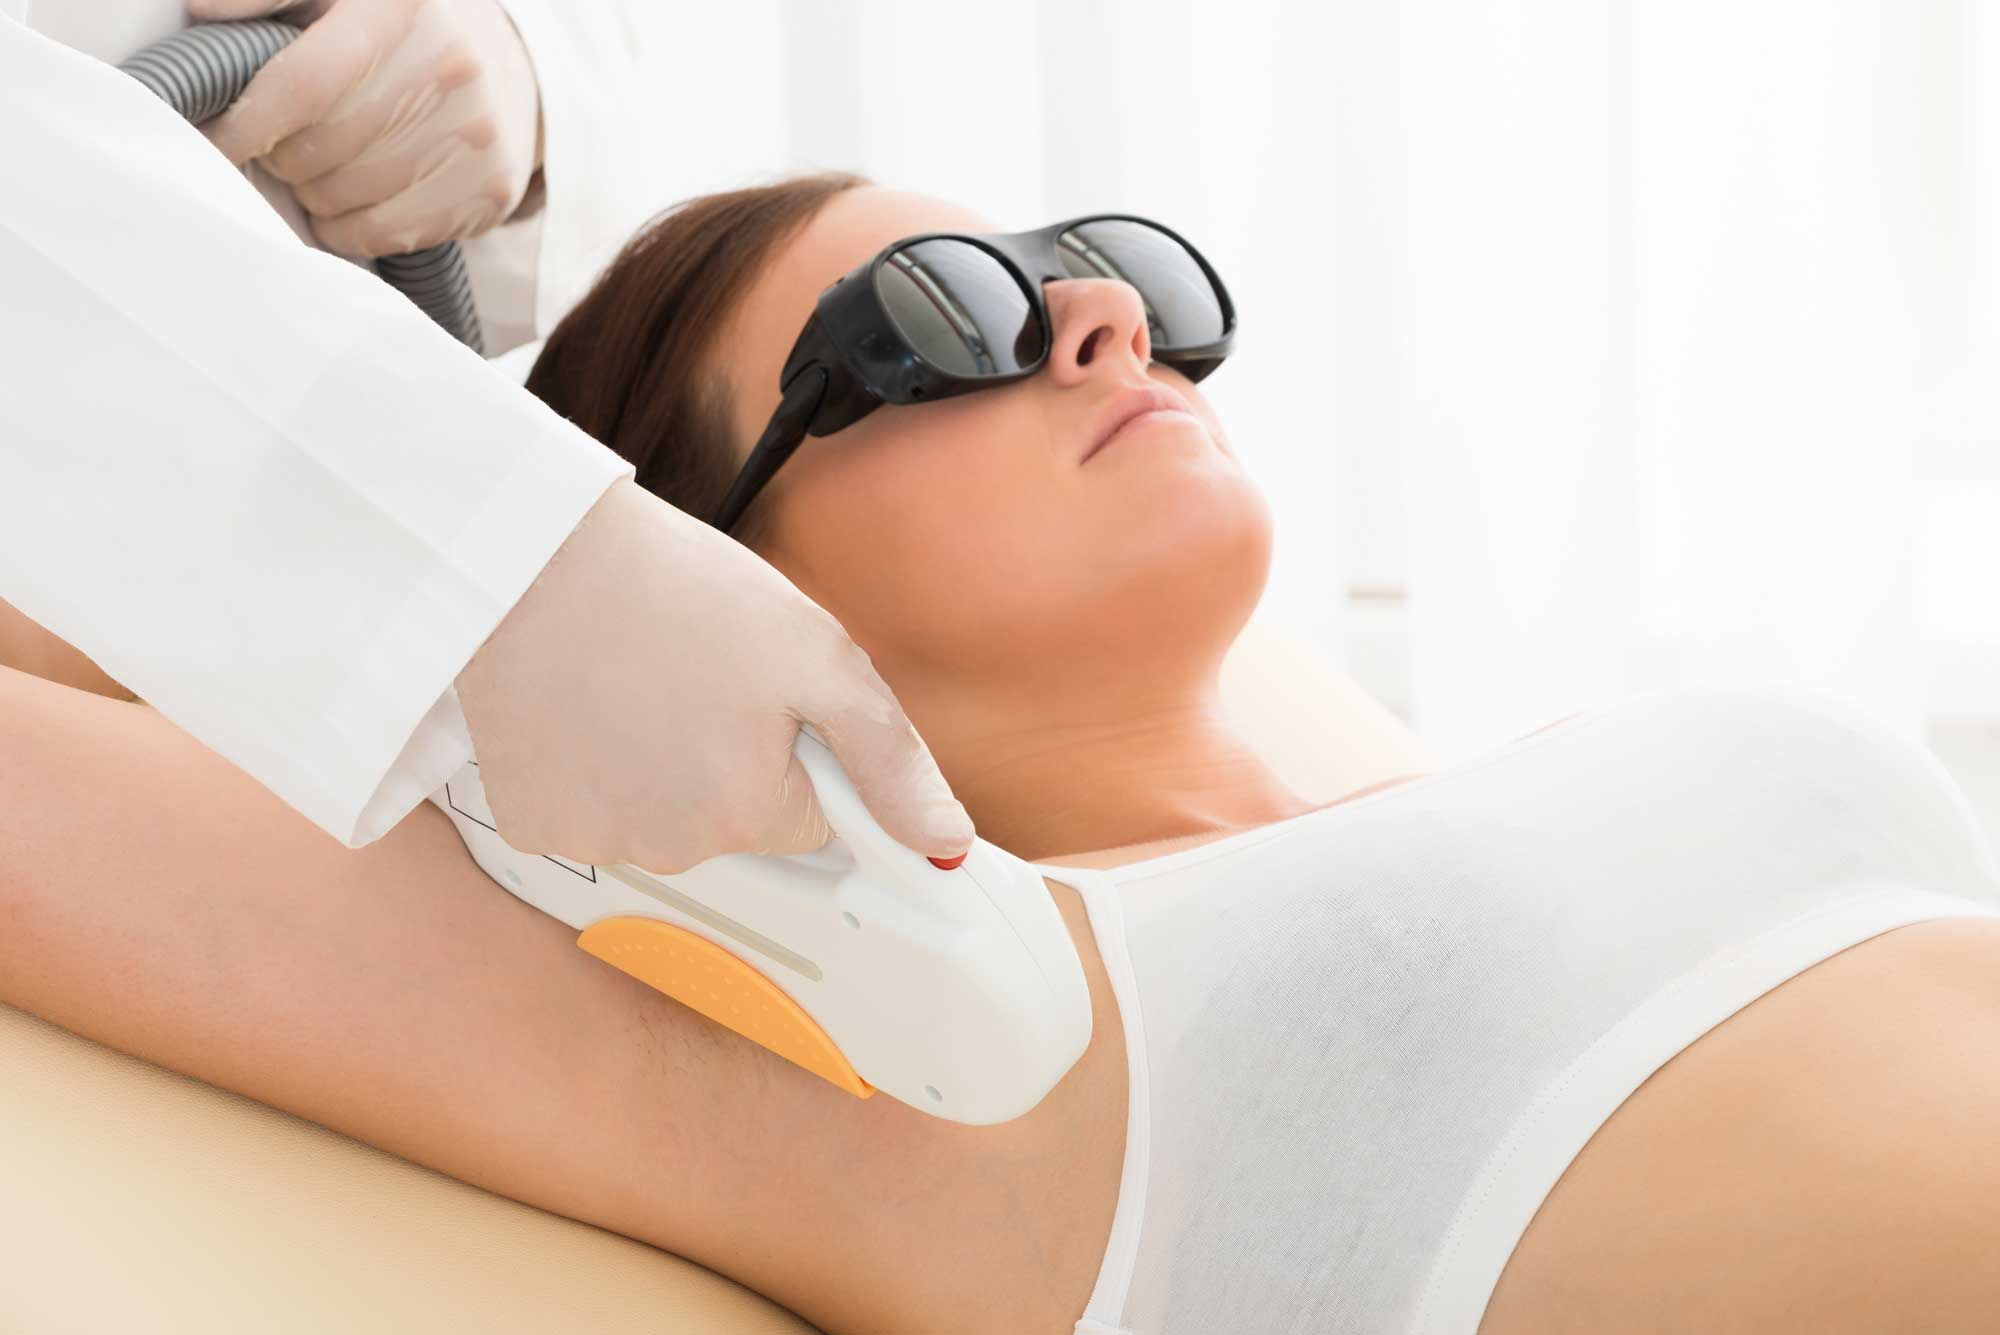 Female Laser Hair Removal